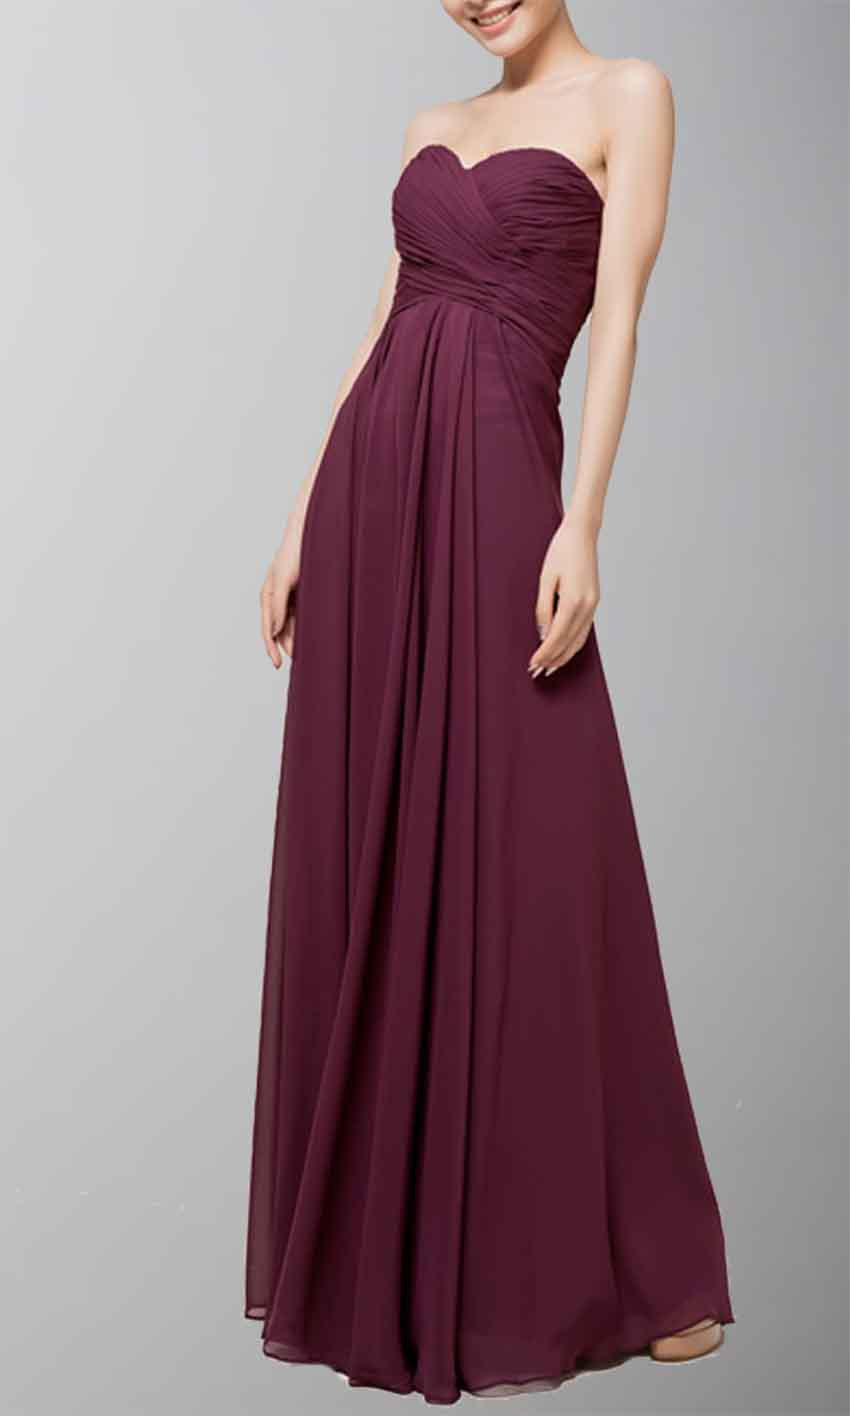 Dark Purple Fancy Chiffon Bridesmaid Prom Dress KSP060 [KSP060] - £83.00 : Cheap Prom Dresses Uk, Bridesmaid Dresses, 2014 Prom & Evening Dresses, Look for cheap elegant prom dresses 2014, cocktail gowns, or dresses for special occasions? kissprom.co.uk offers various bridesmaid dresses, evening dress, free shipping to UK etc.